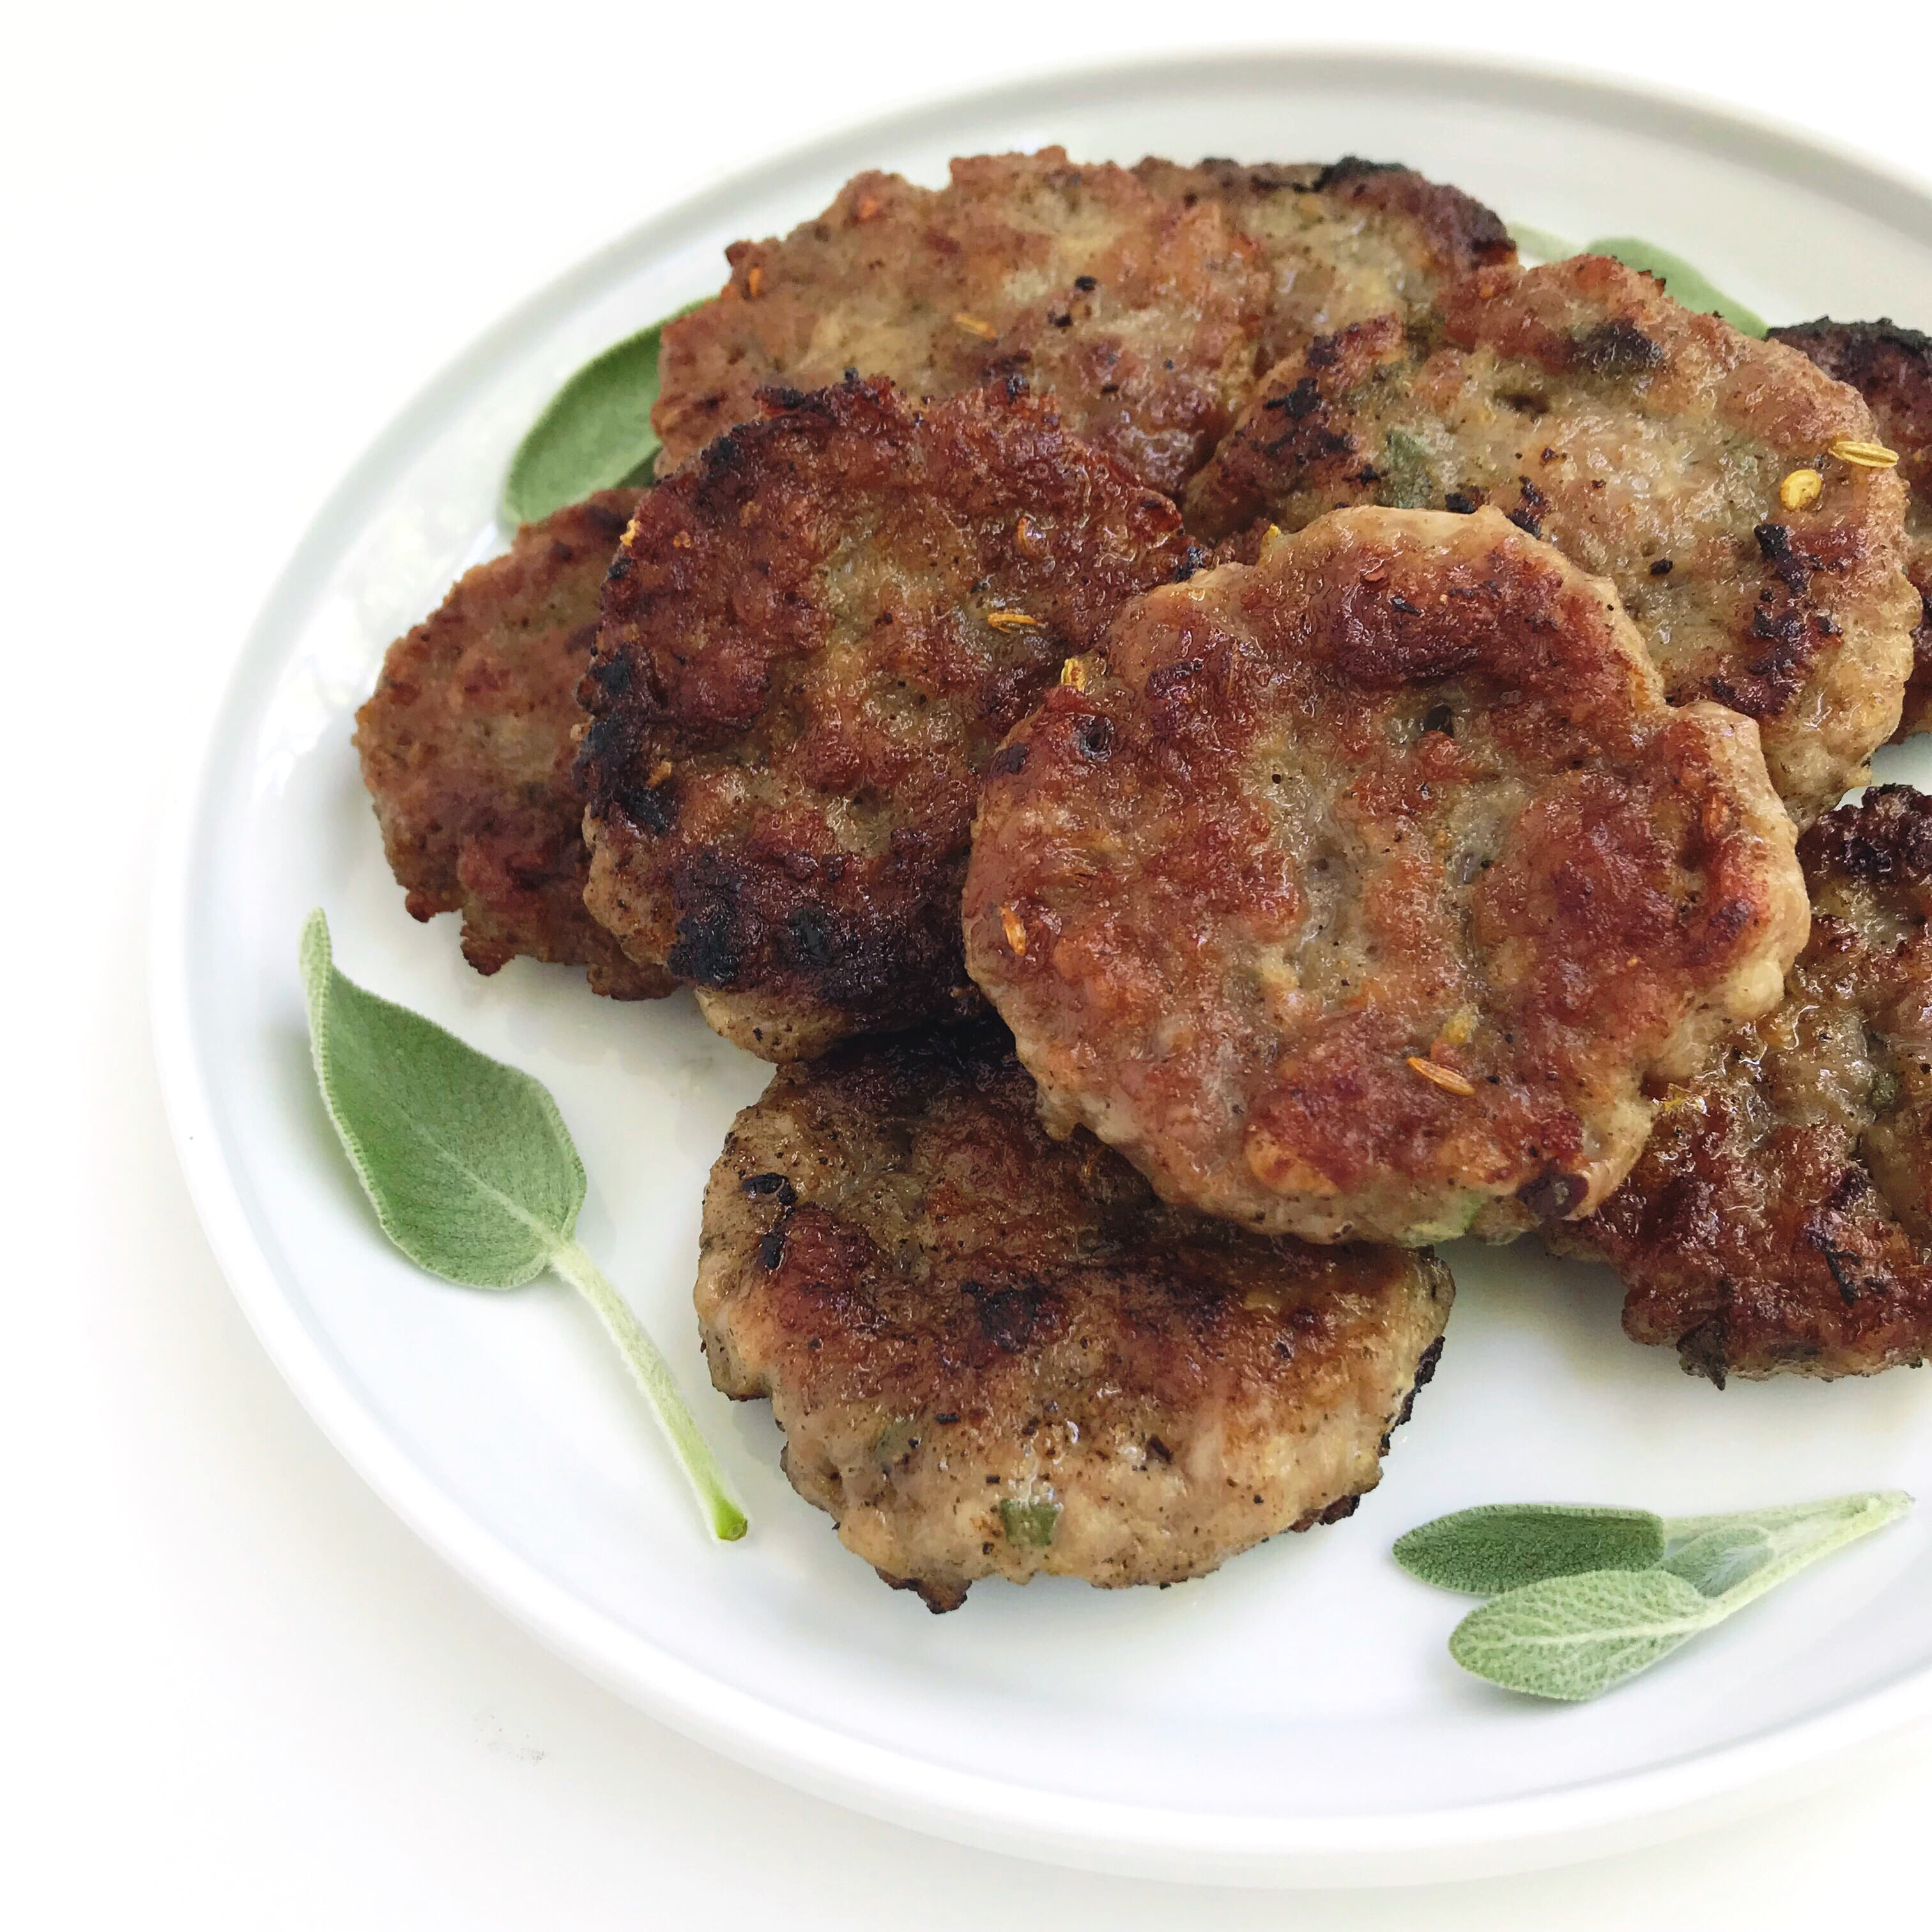 A plate of Maple-Sage Breakfast Patties, garnished with fresh sage leaves.